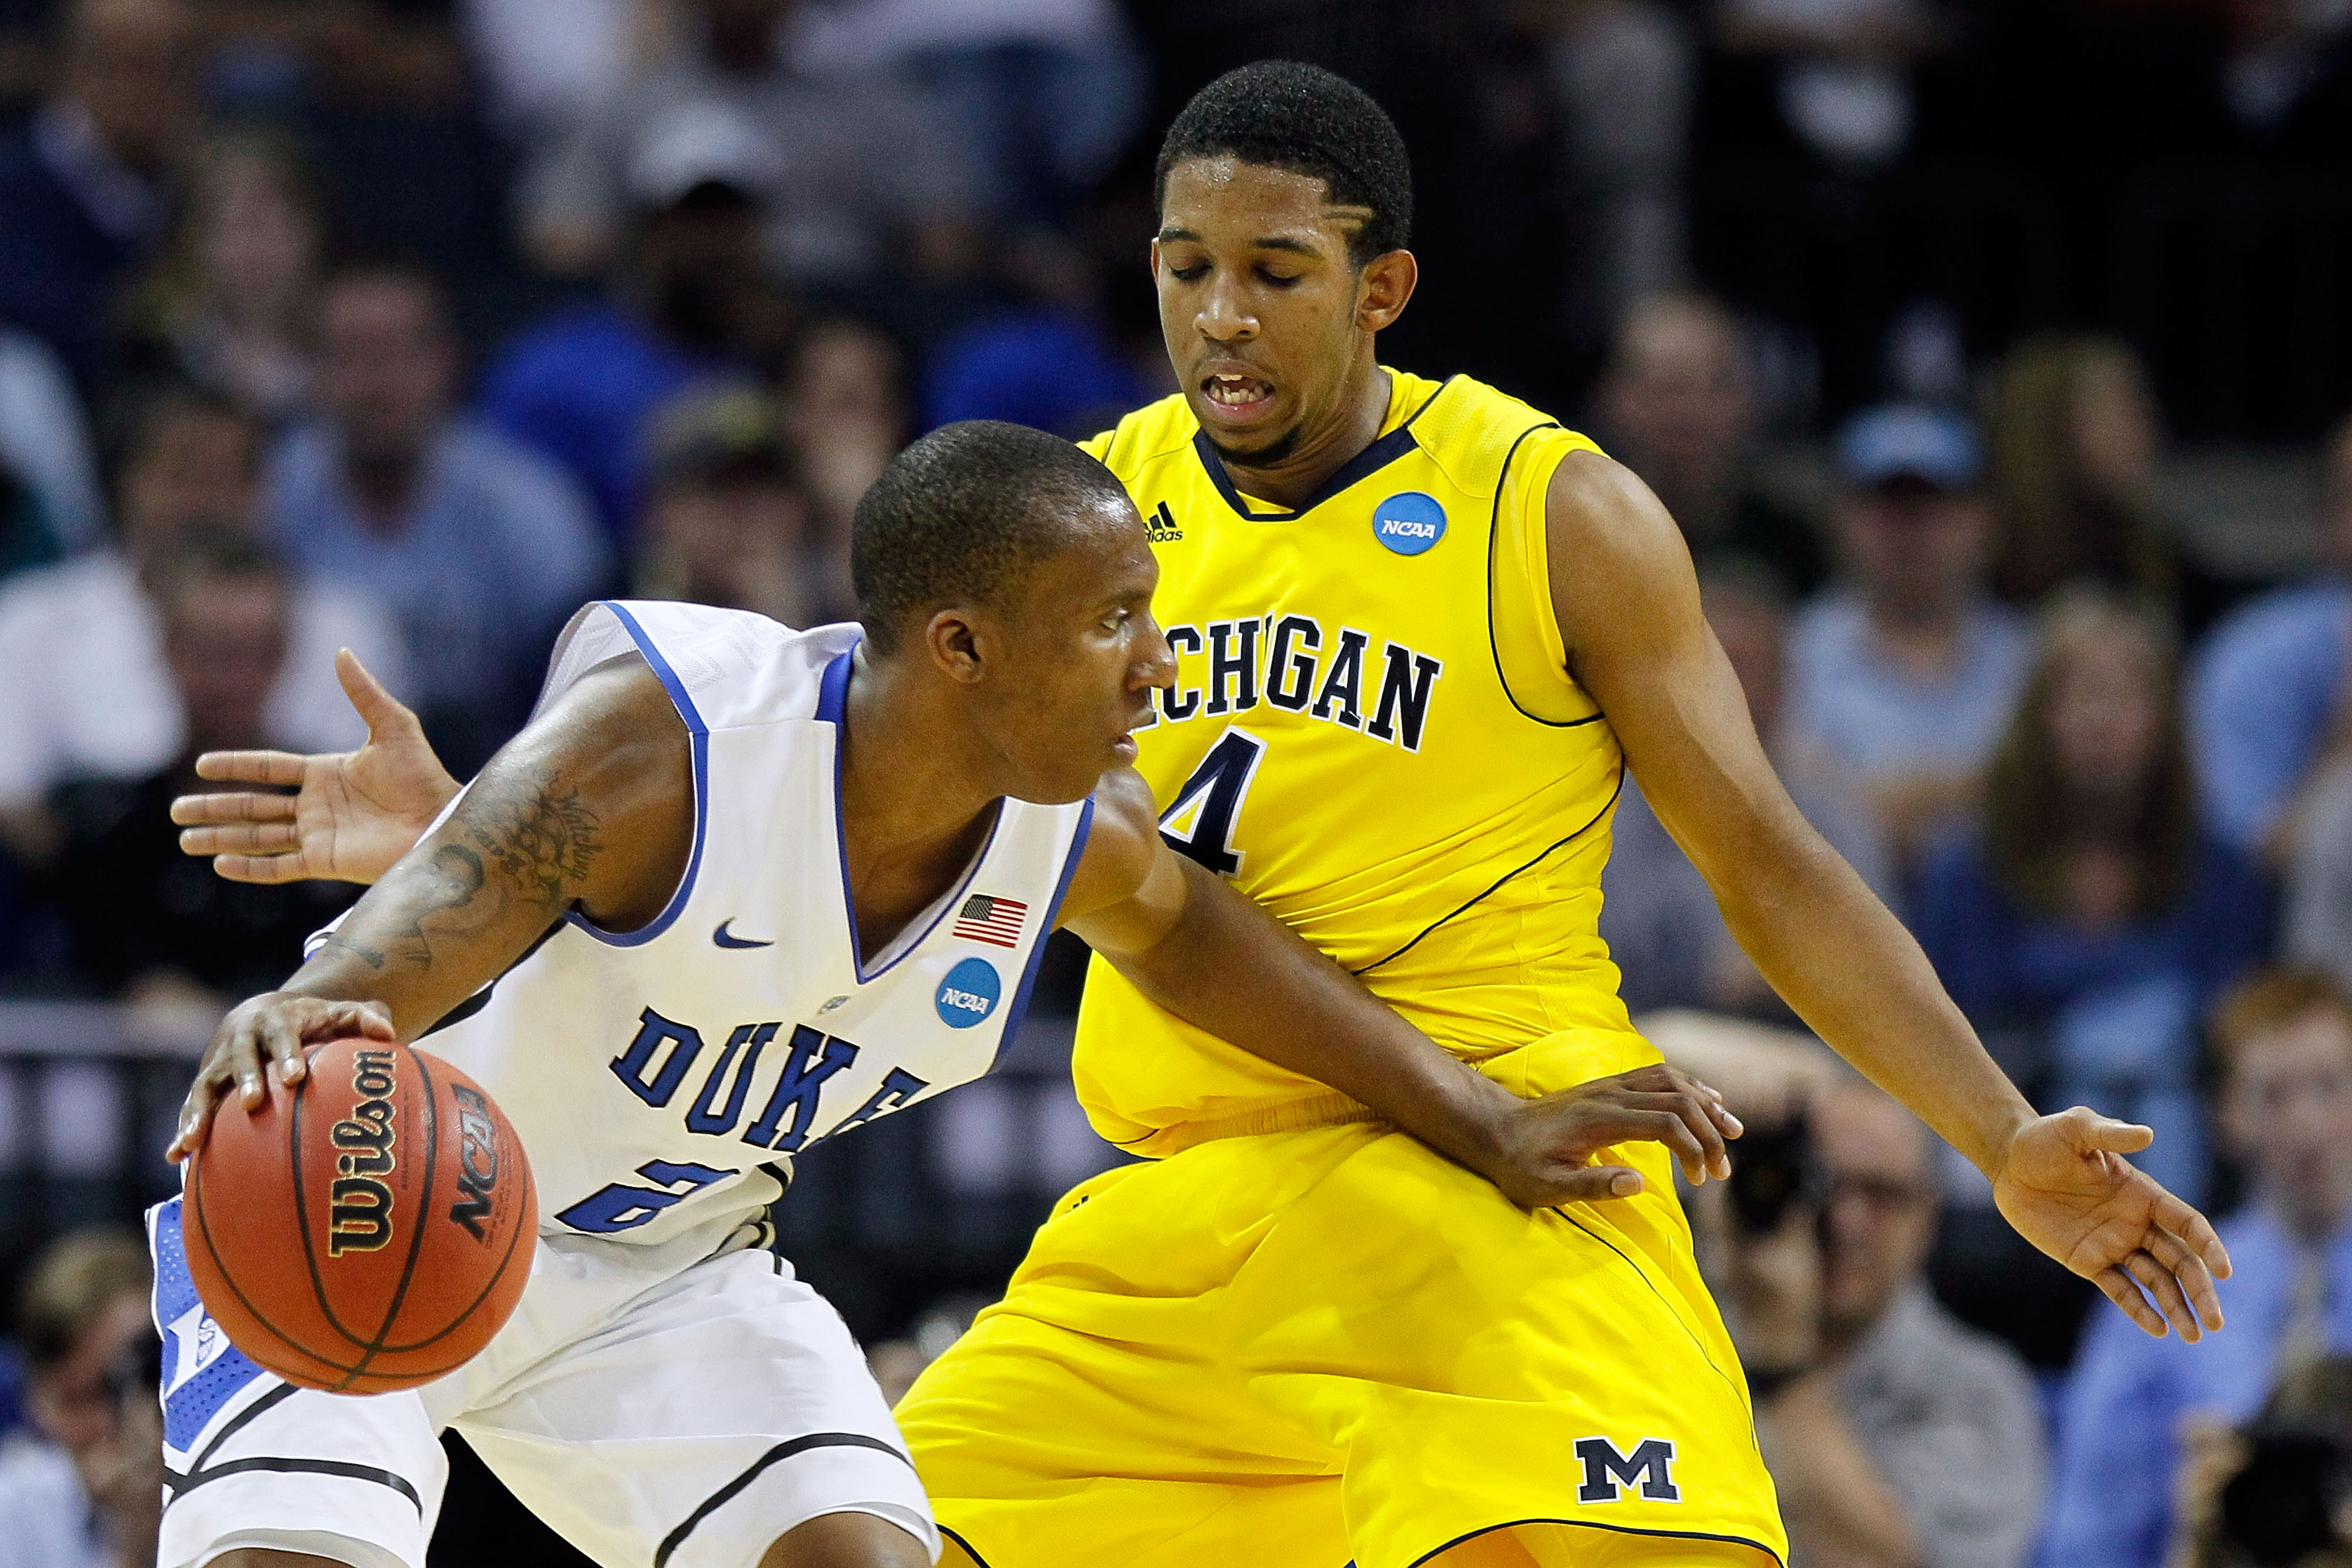 CHARLOTTE, NC - MARCH 20:  Nolan Smith #2 of the Duke Blue Devils moves the ball against Darius Morris #4 of the Michigan Wolverines during the third round of the 2011 NCAA men's basketball tournament at Time Warner Cable Arena on March 20, 2011 in Charlo